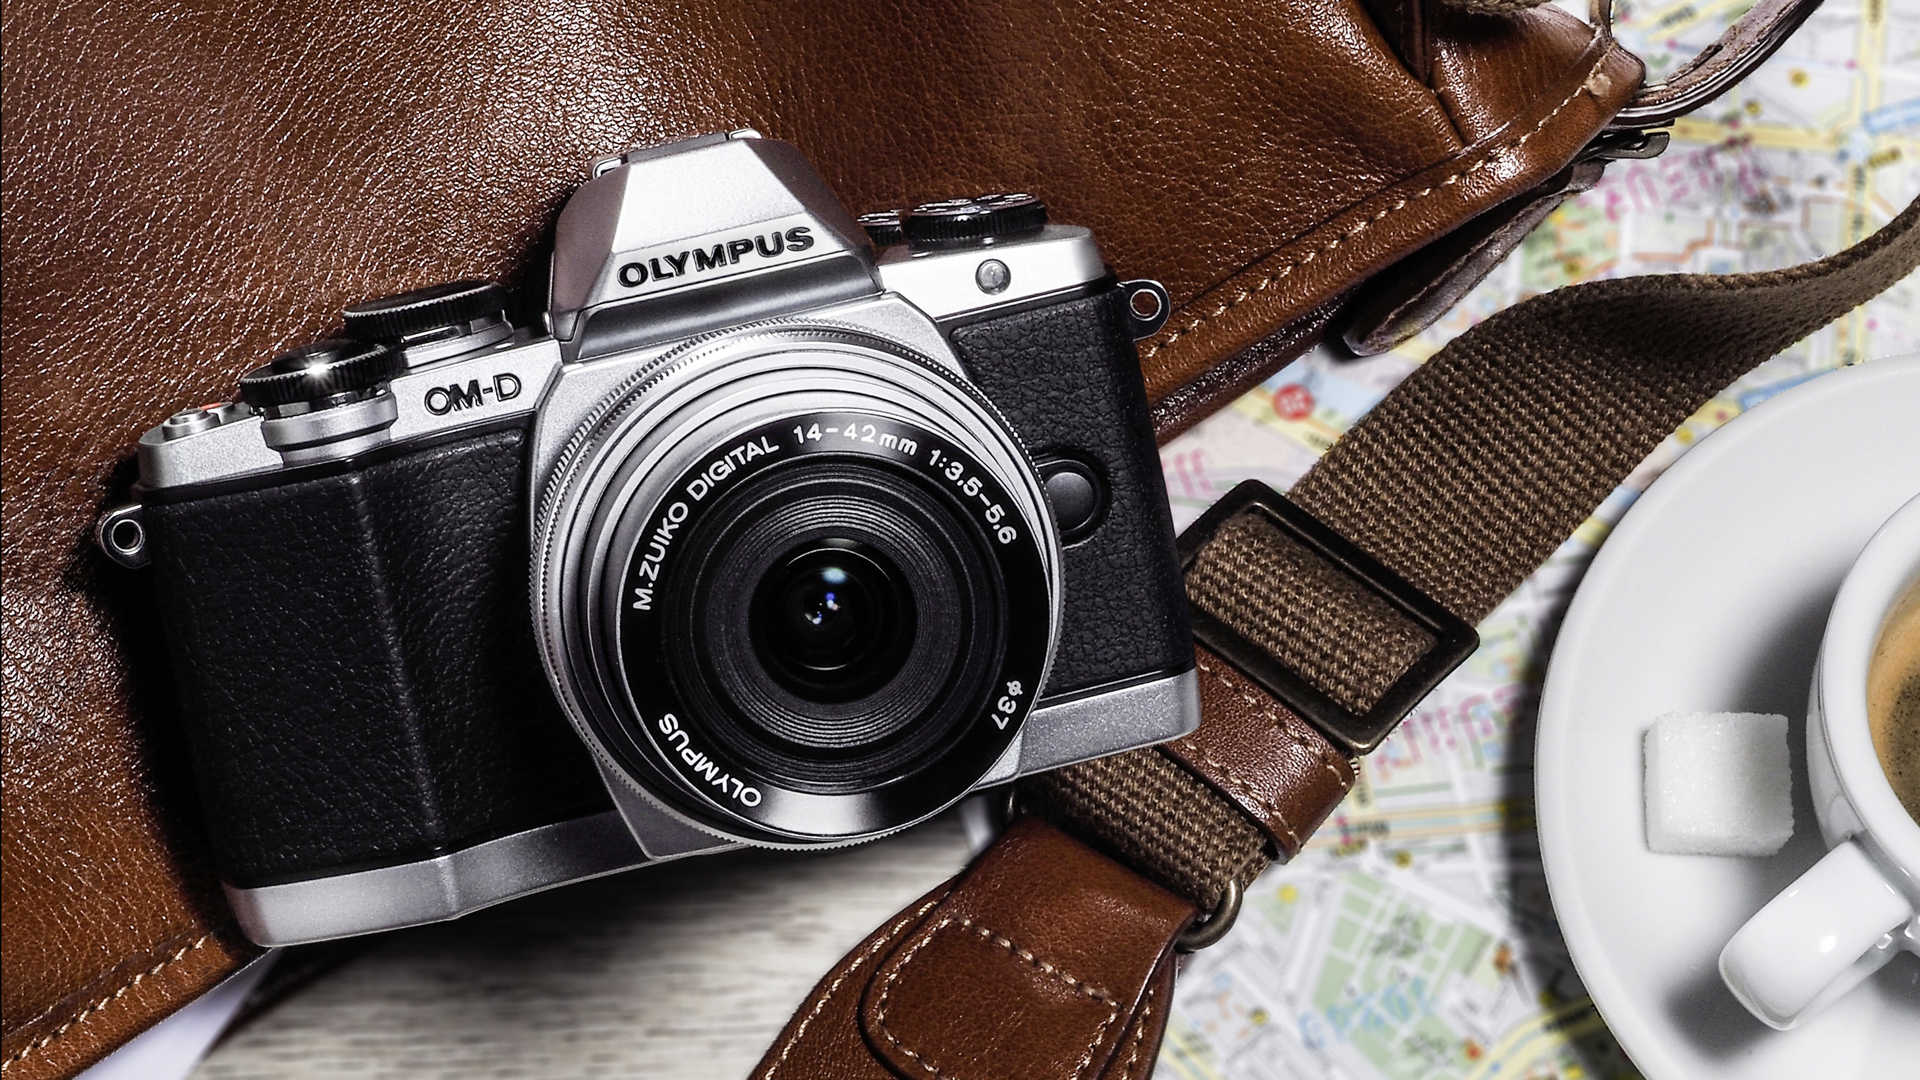 5 best mirrorless cameras for enthusiasts 2015 | TechRadar